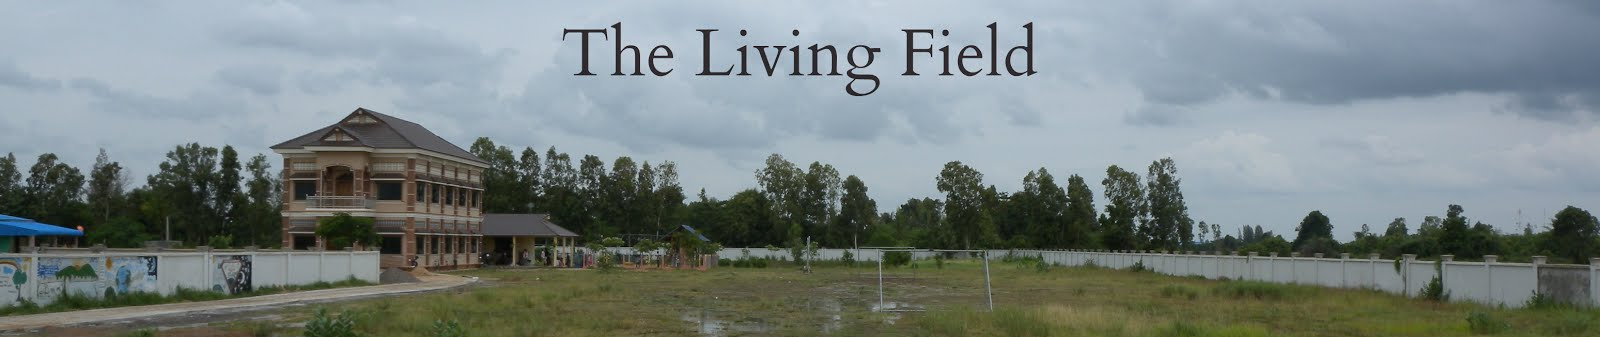 The Living Field